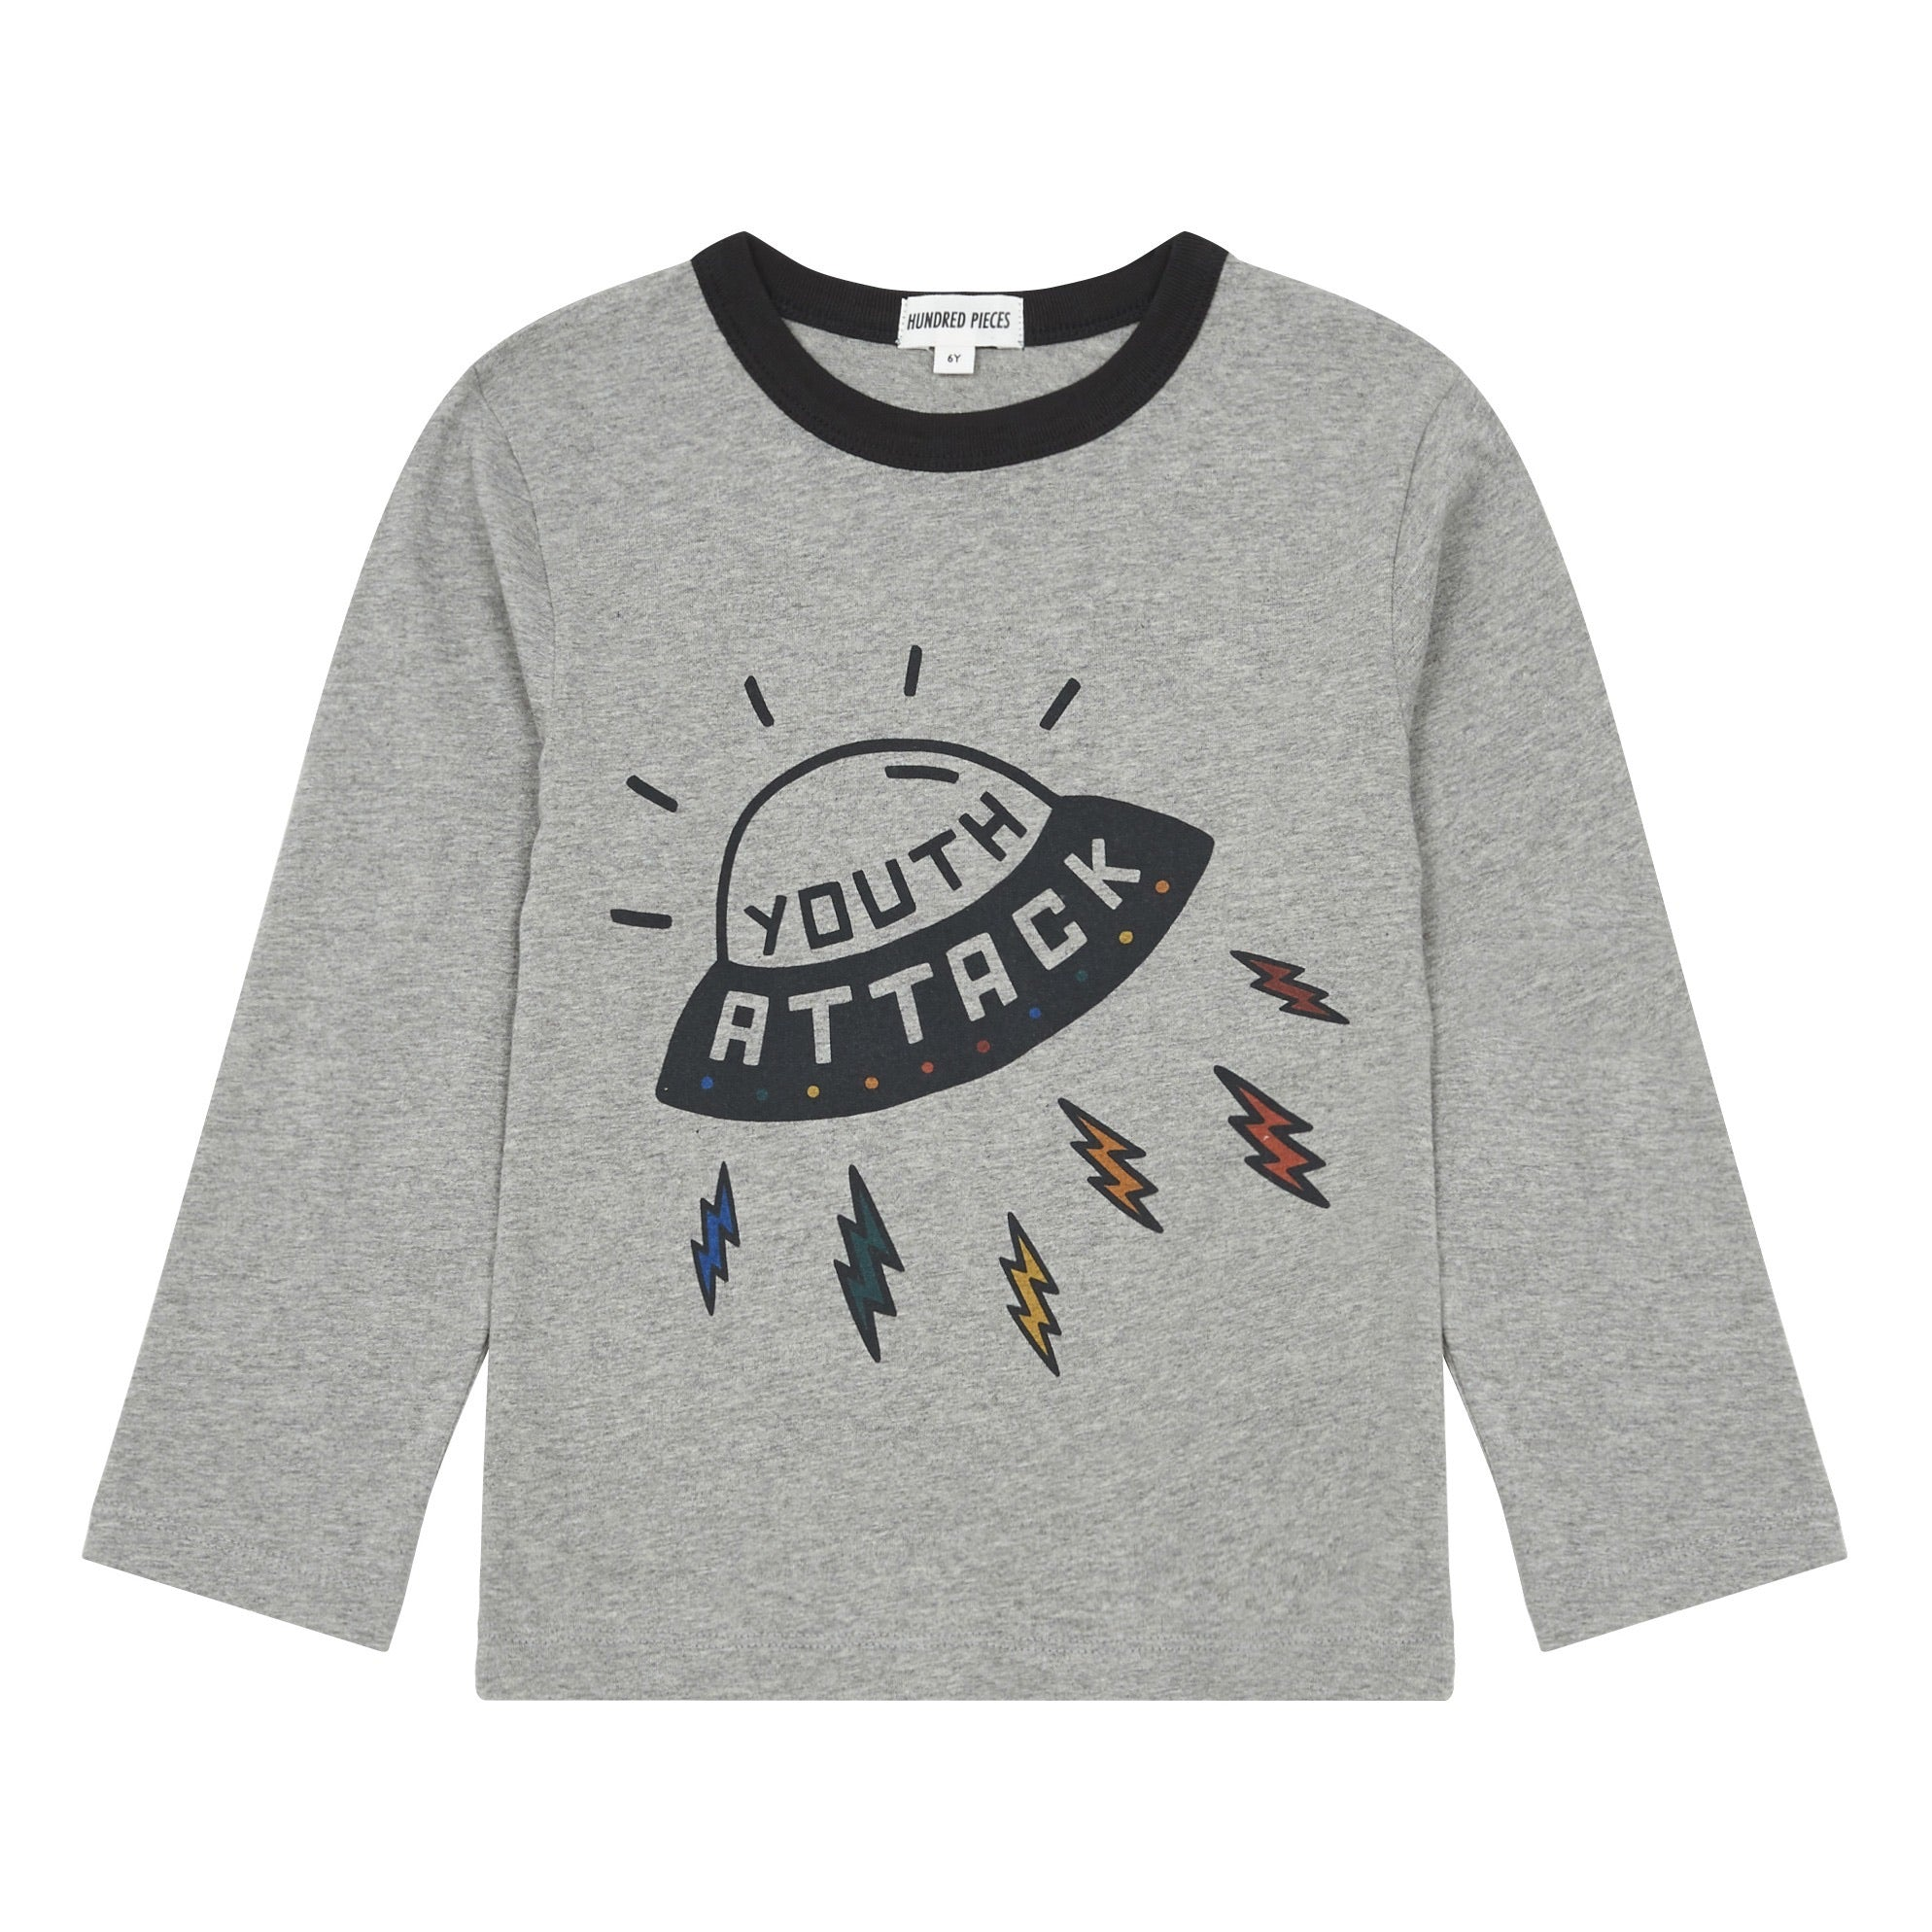 Tee Youth Attack Grey